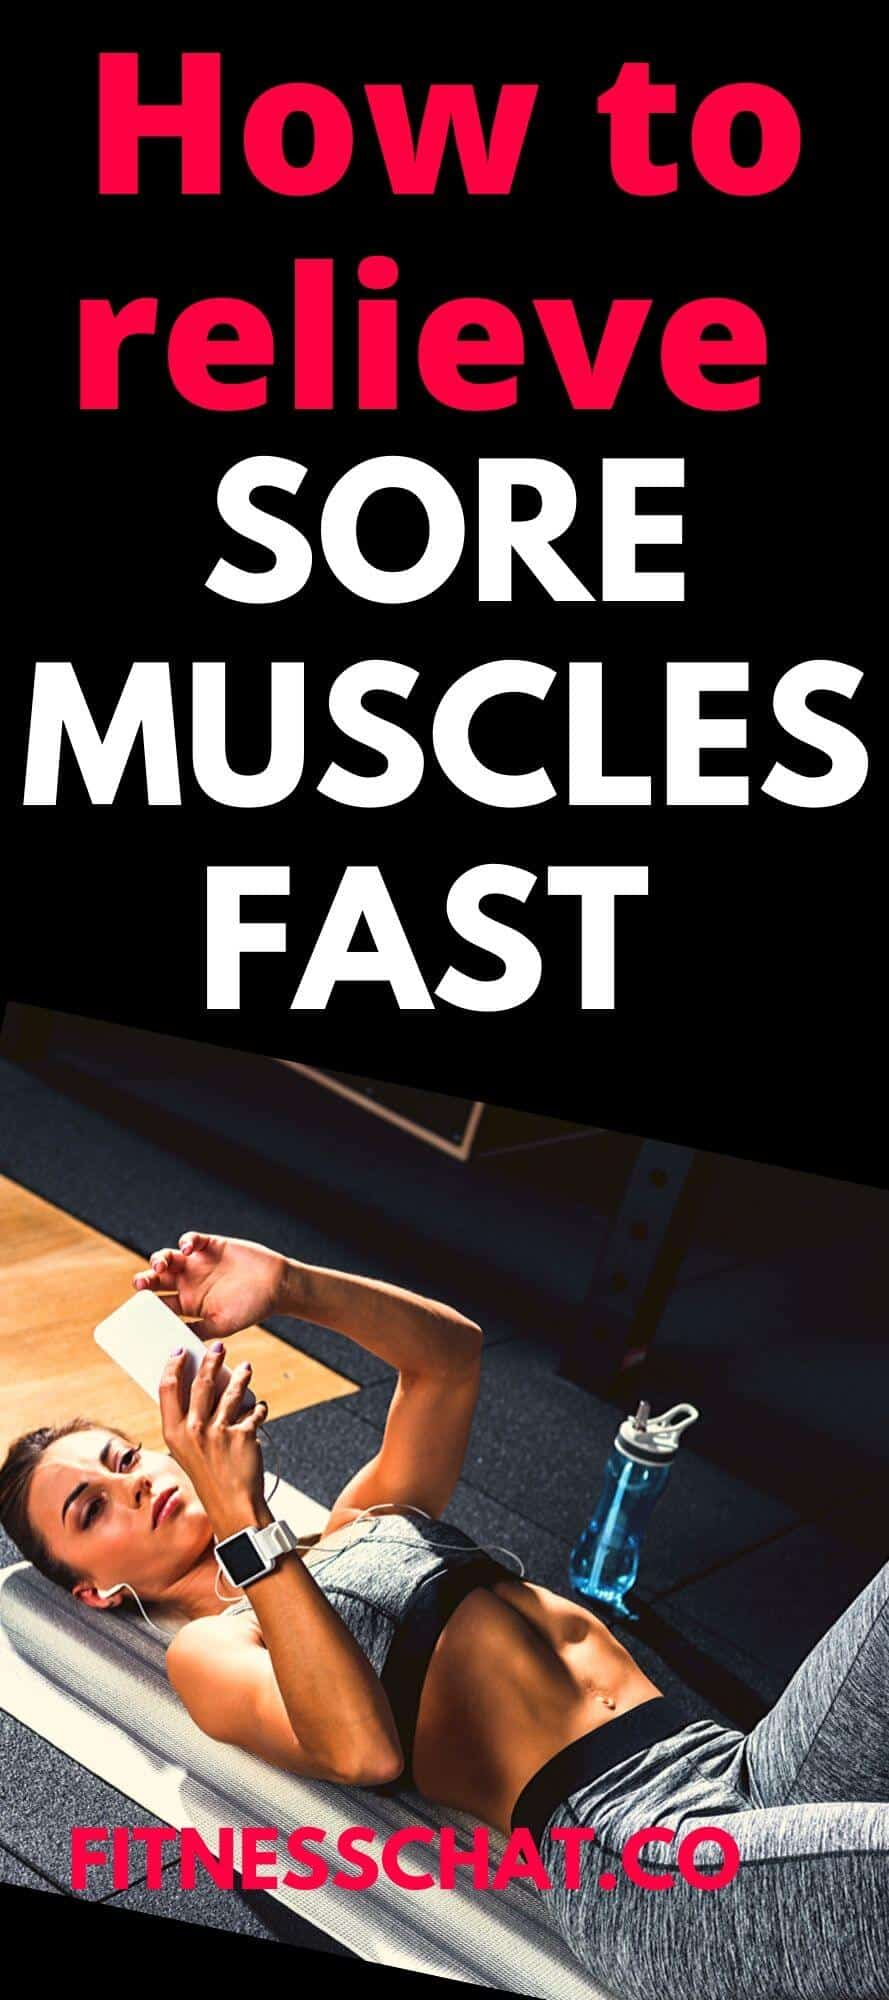 how to relieve sore muscles fast. best remedy for sore muscles after workout and best way to treat sore muscles after a workout